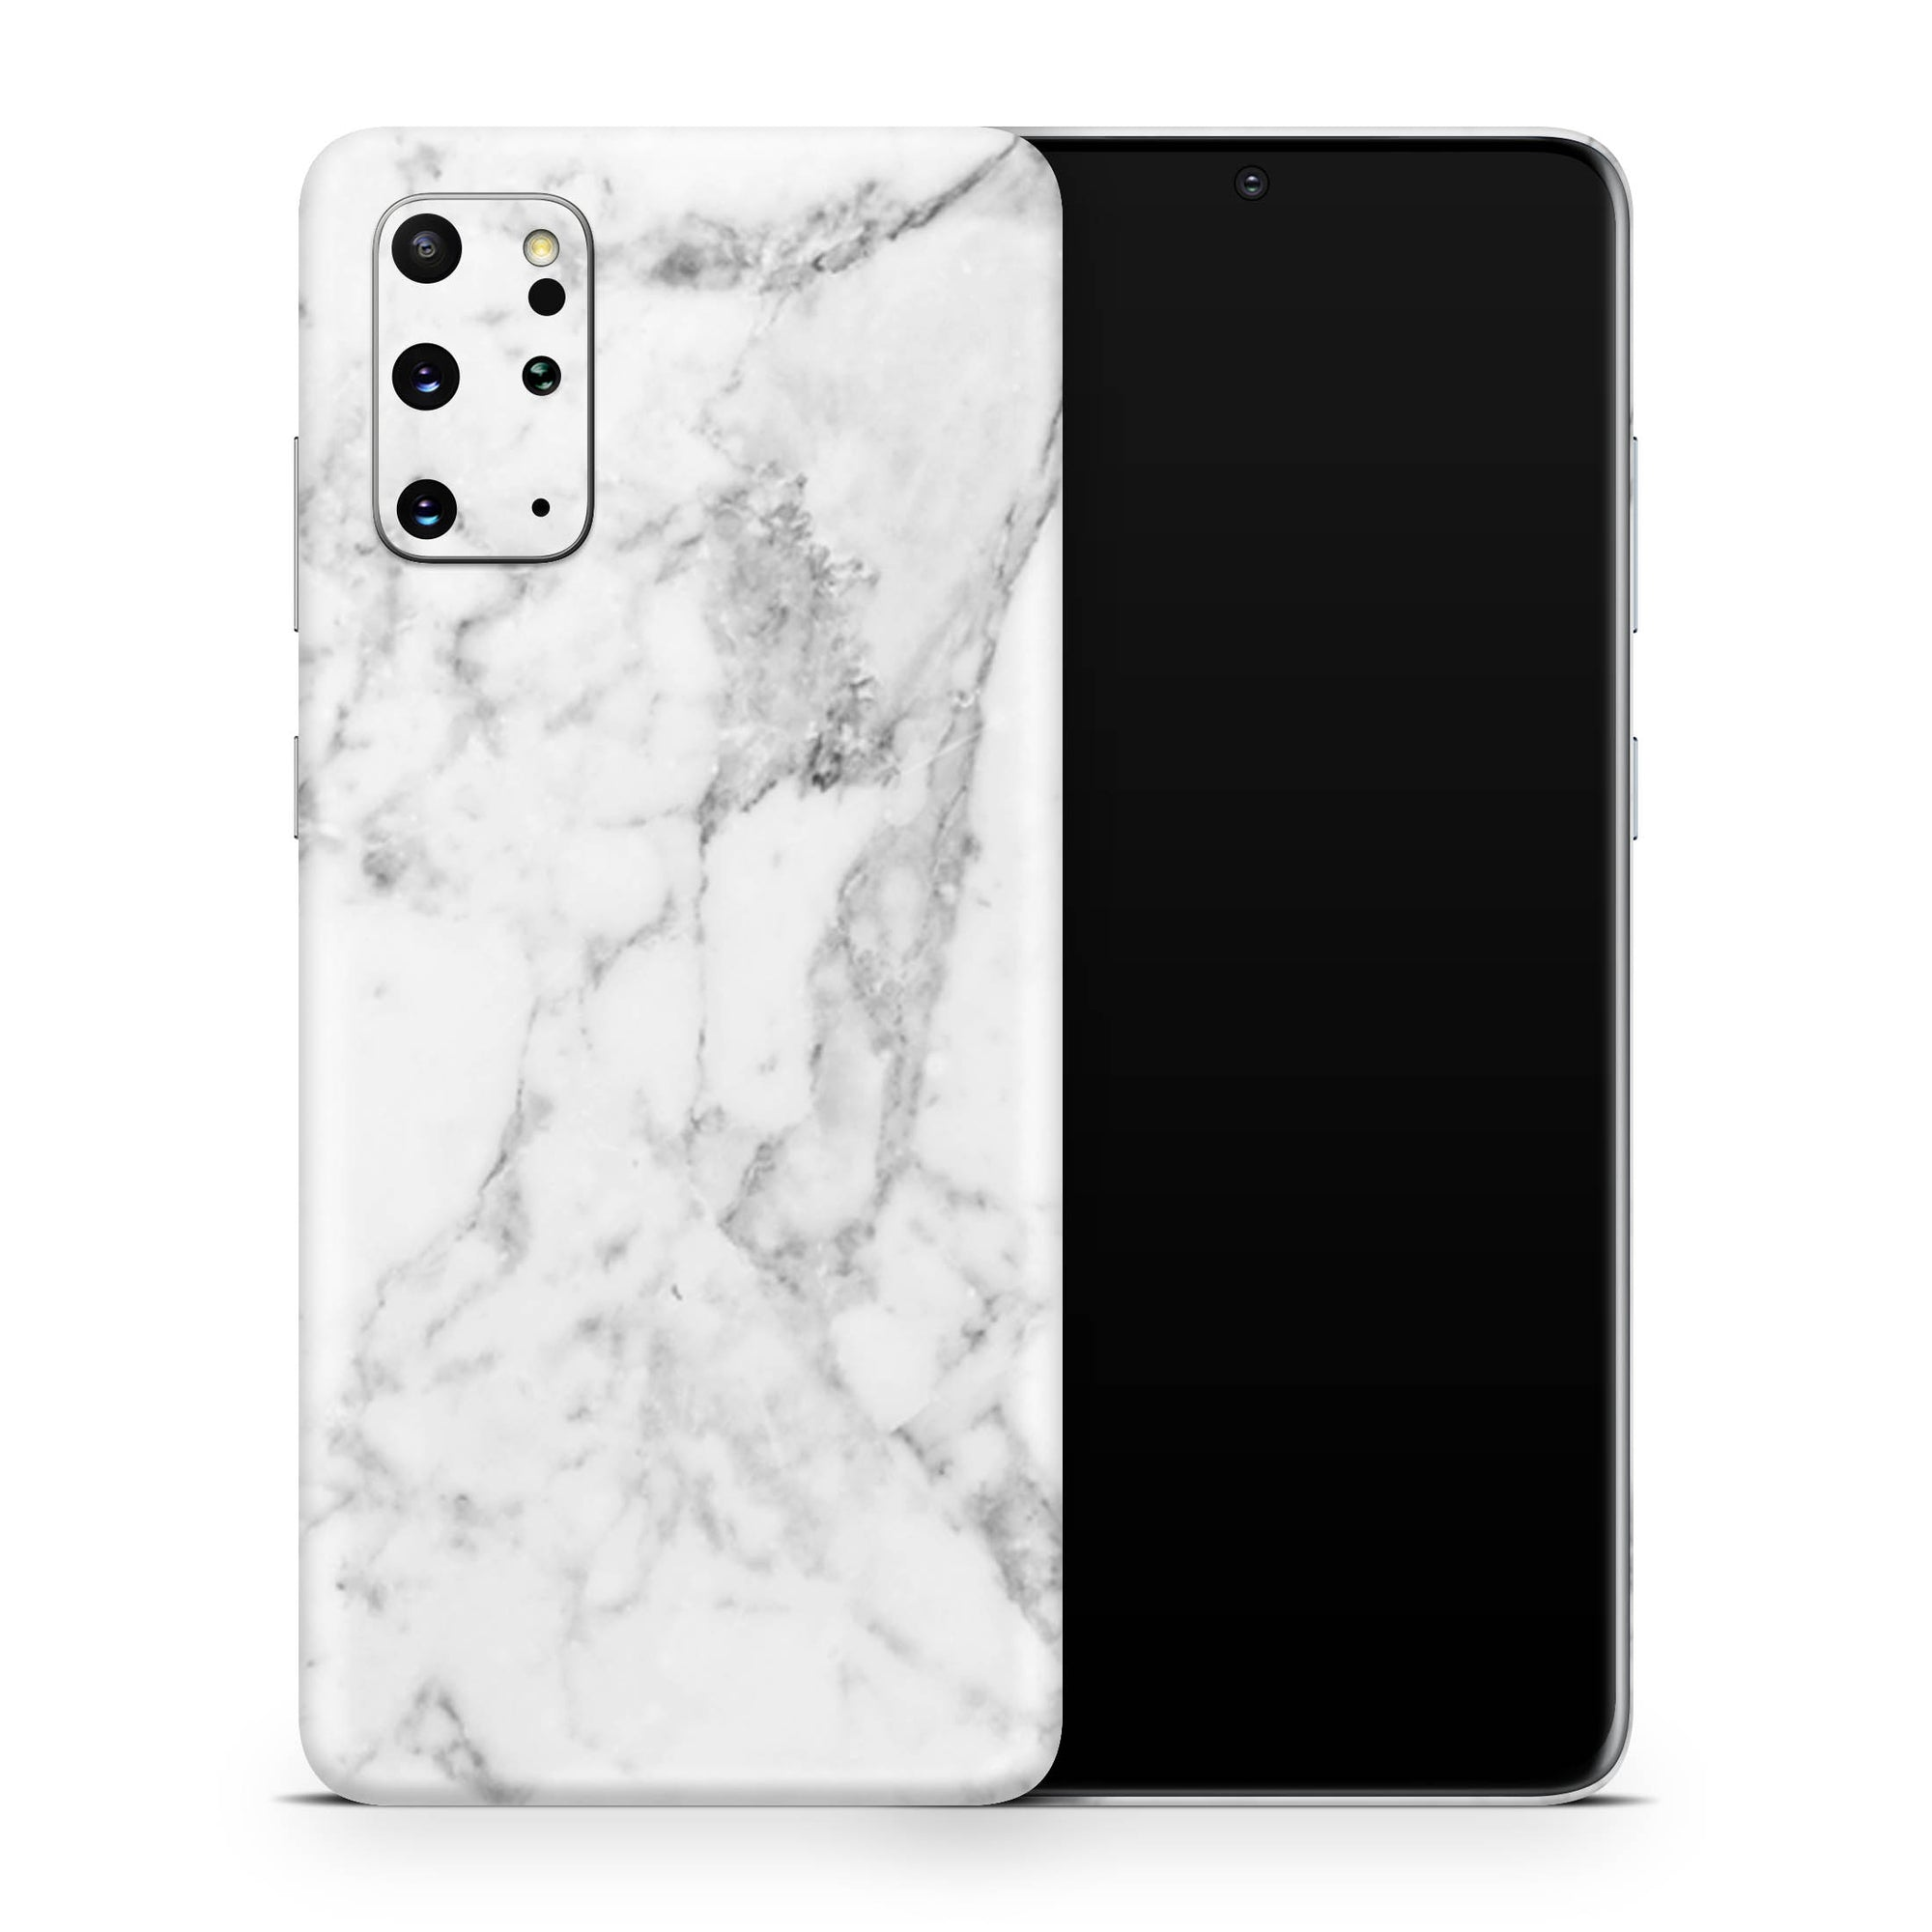 White Marble Galaxy S20 Ultra Skin + Case-Uniqfind